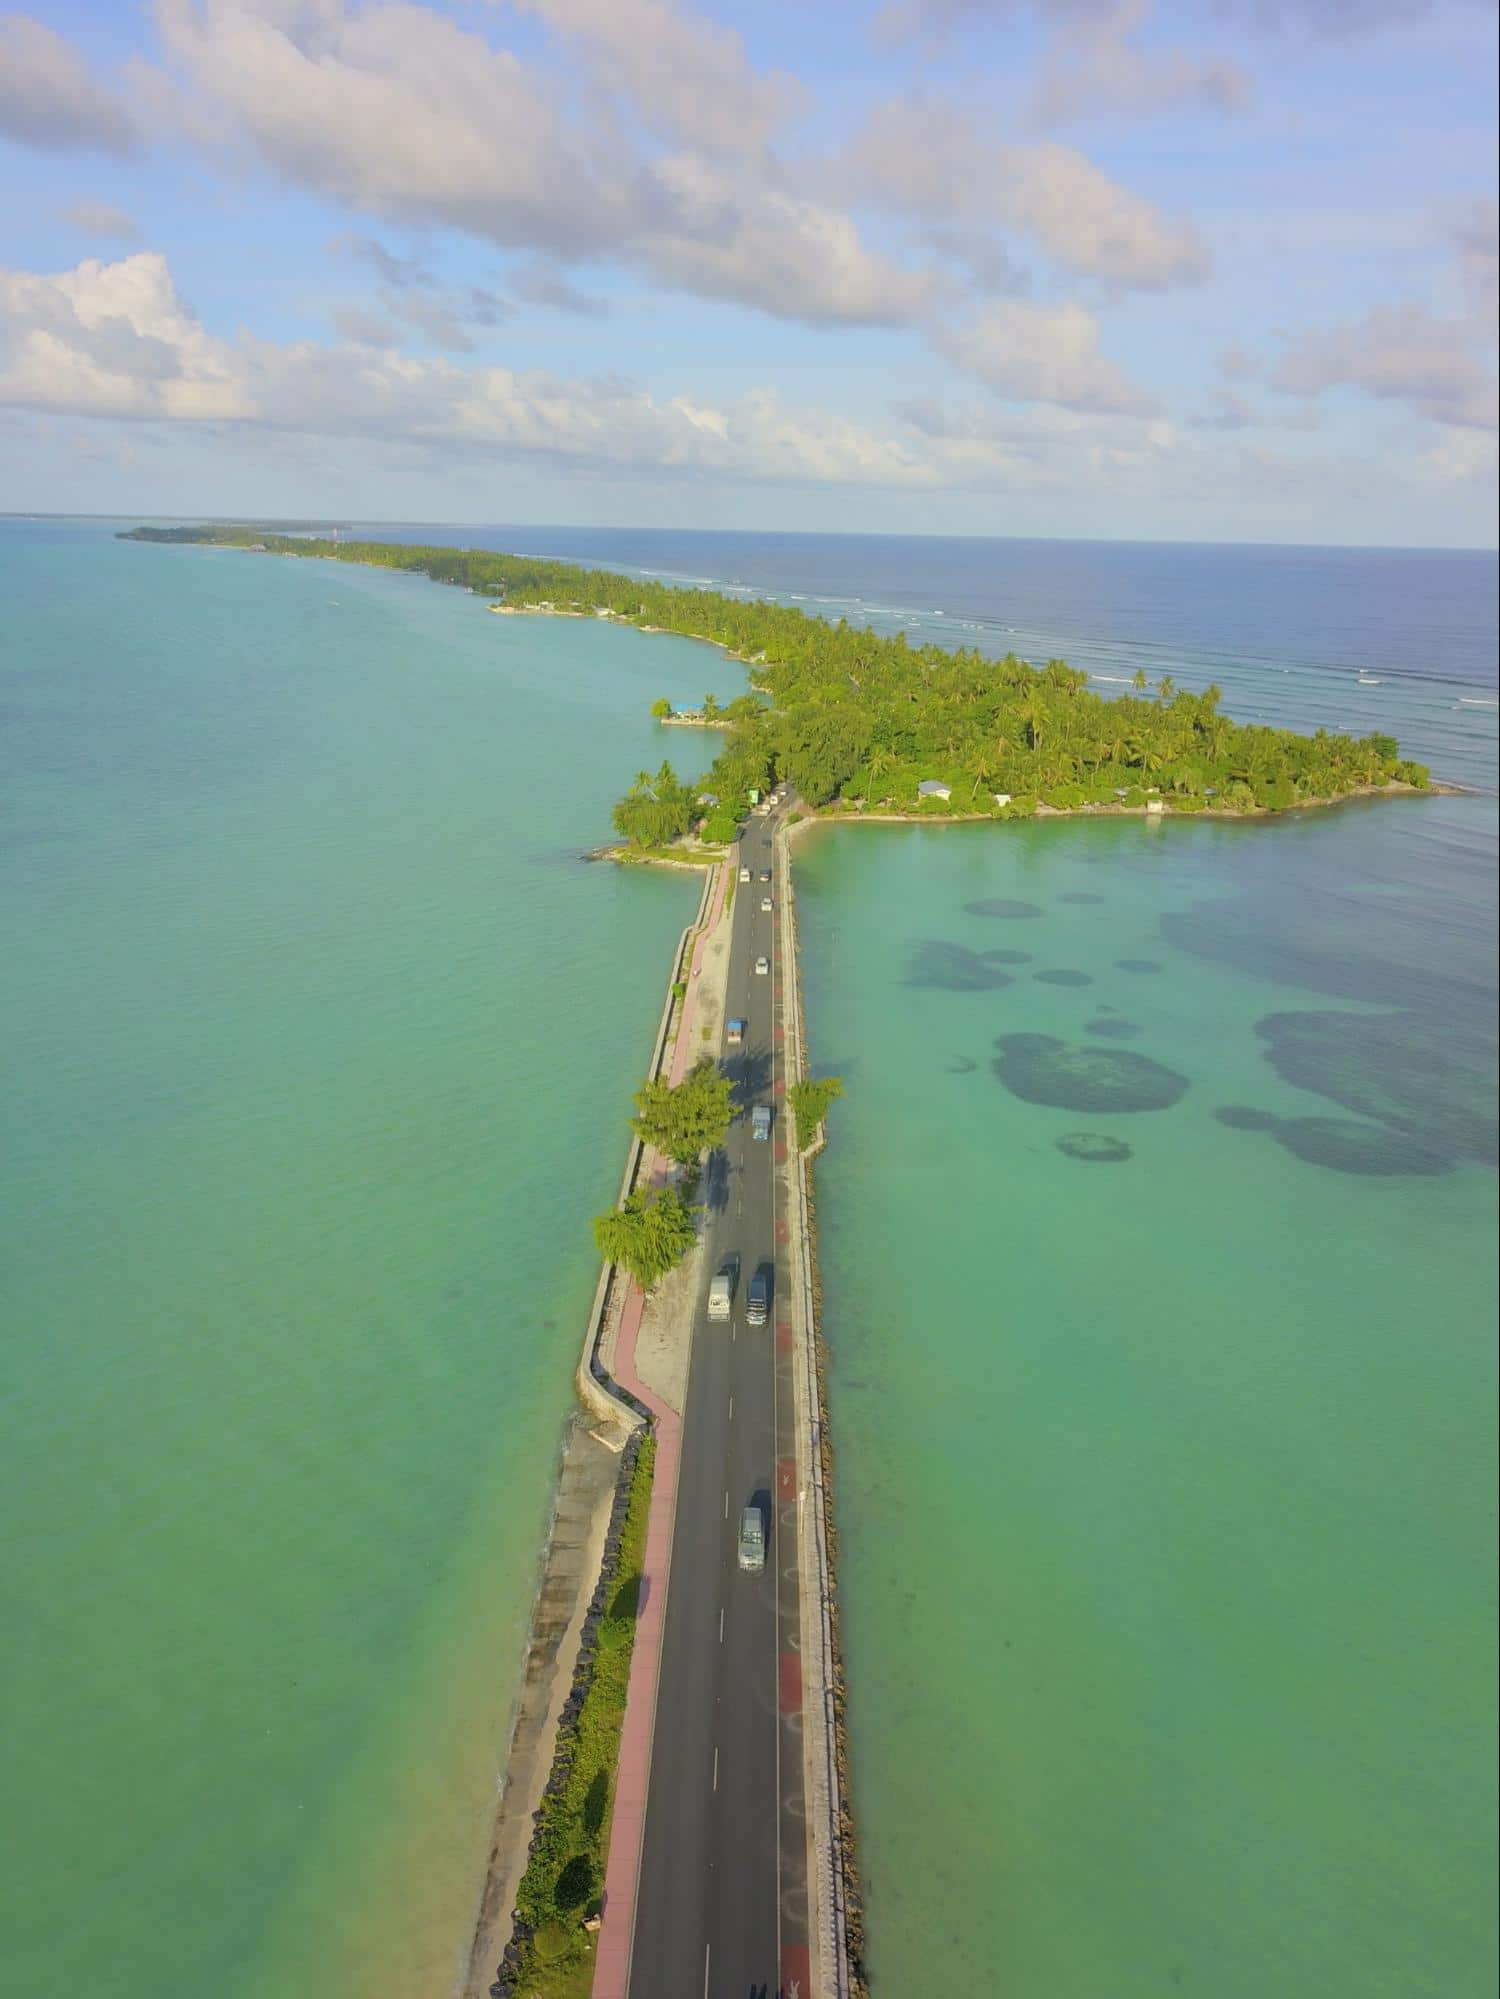 One of the recently constructed causeways in Kiribati